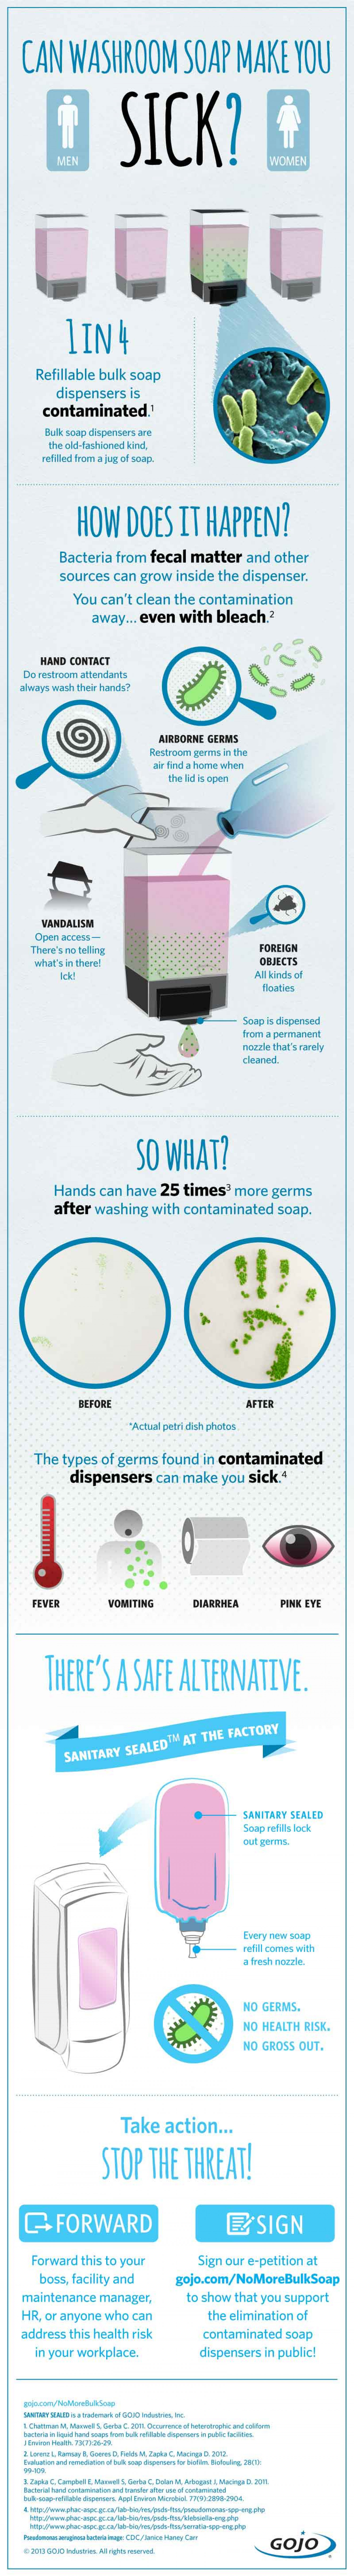 Can Washroom Soap Make You Sick? Infographic